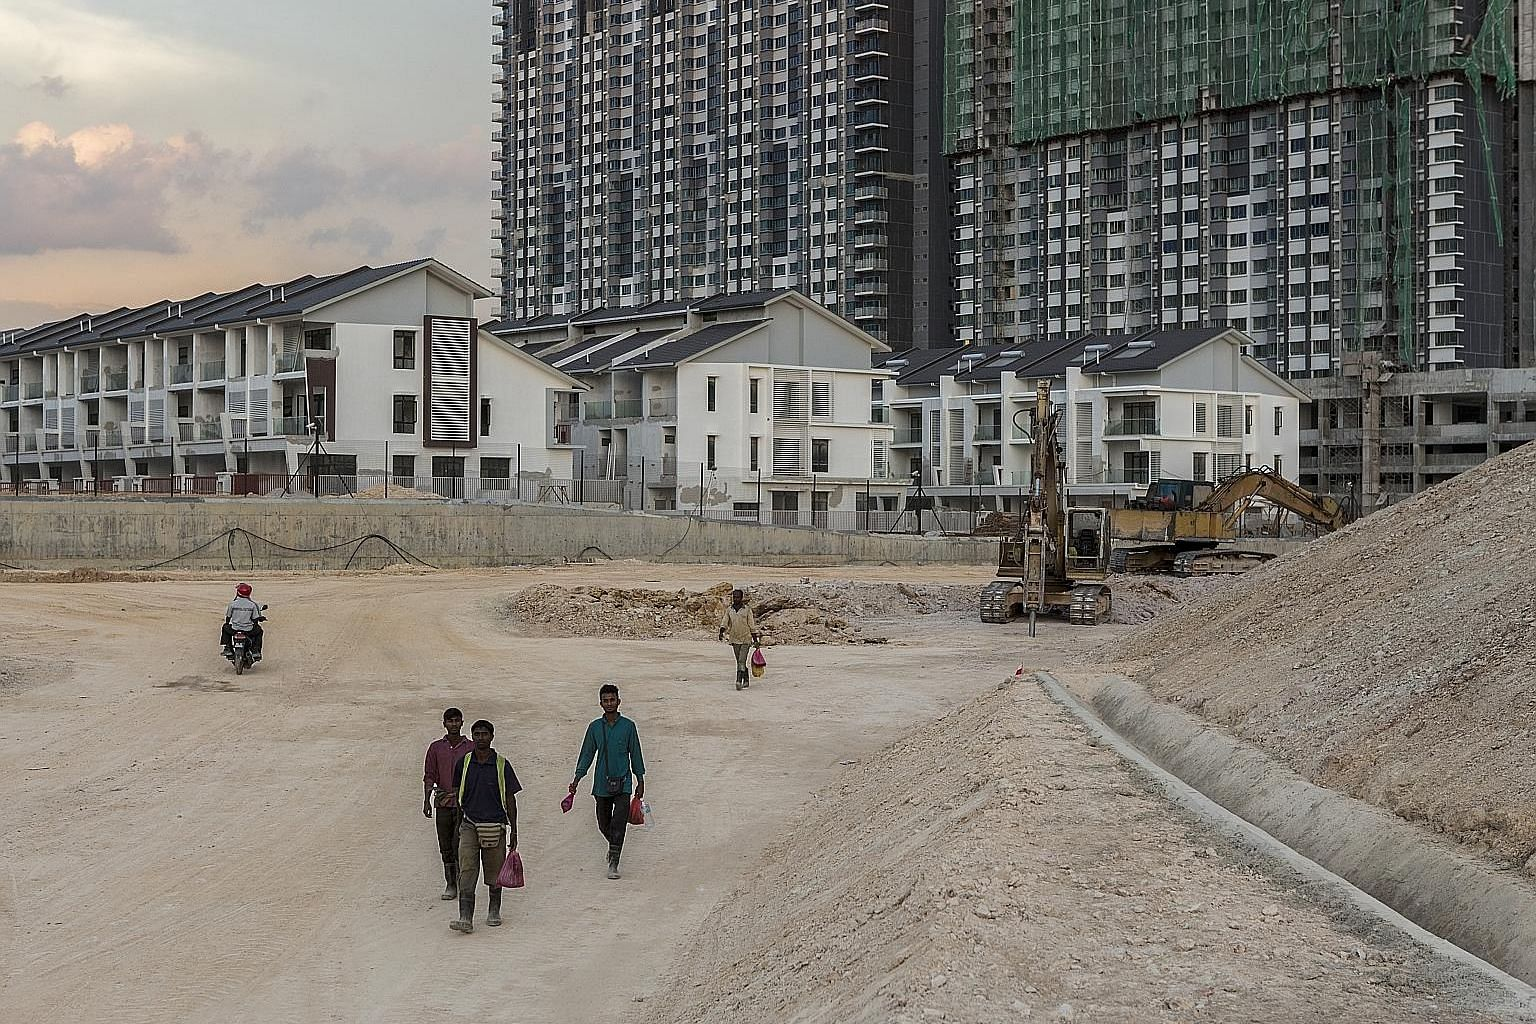 The Savanna Executive Suites complex under construction at Southville City in Selangor, Malaysia. Foreign ownership restrictions in emerging Asian markets are expected to be relaxed gradually in the coming years as those places seek to attract intern